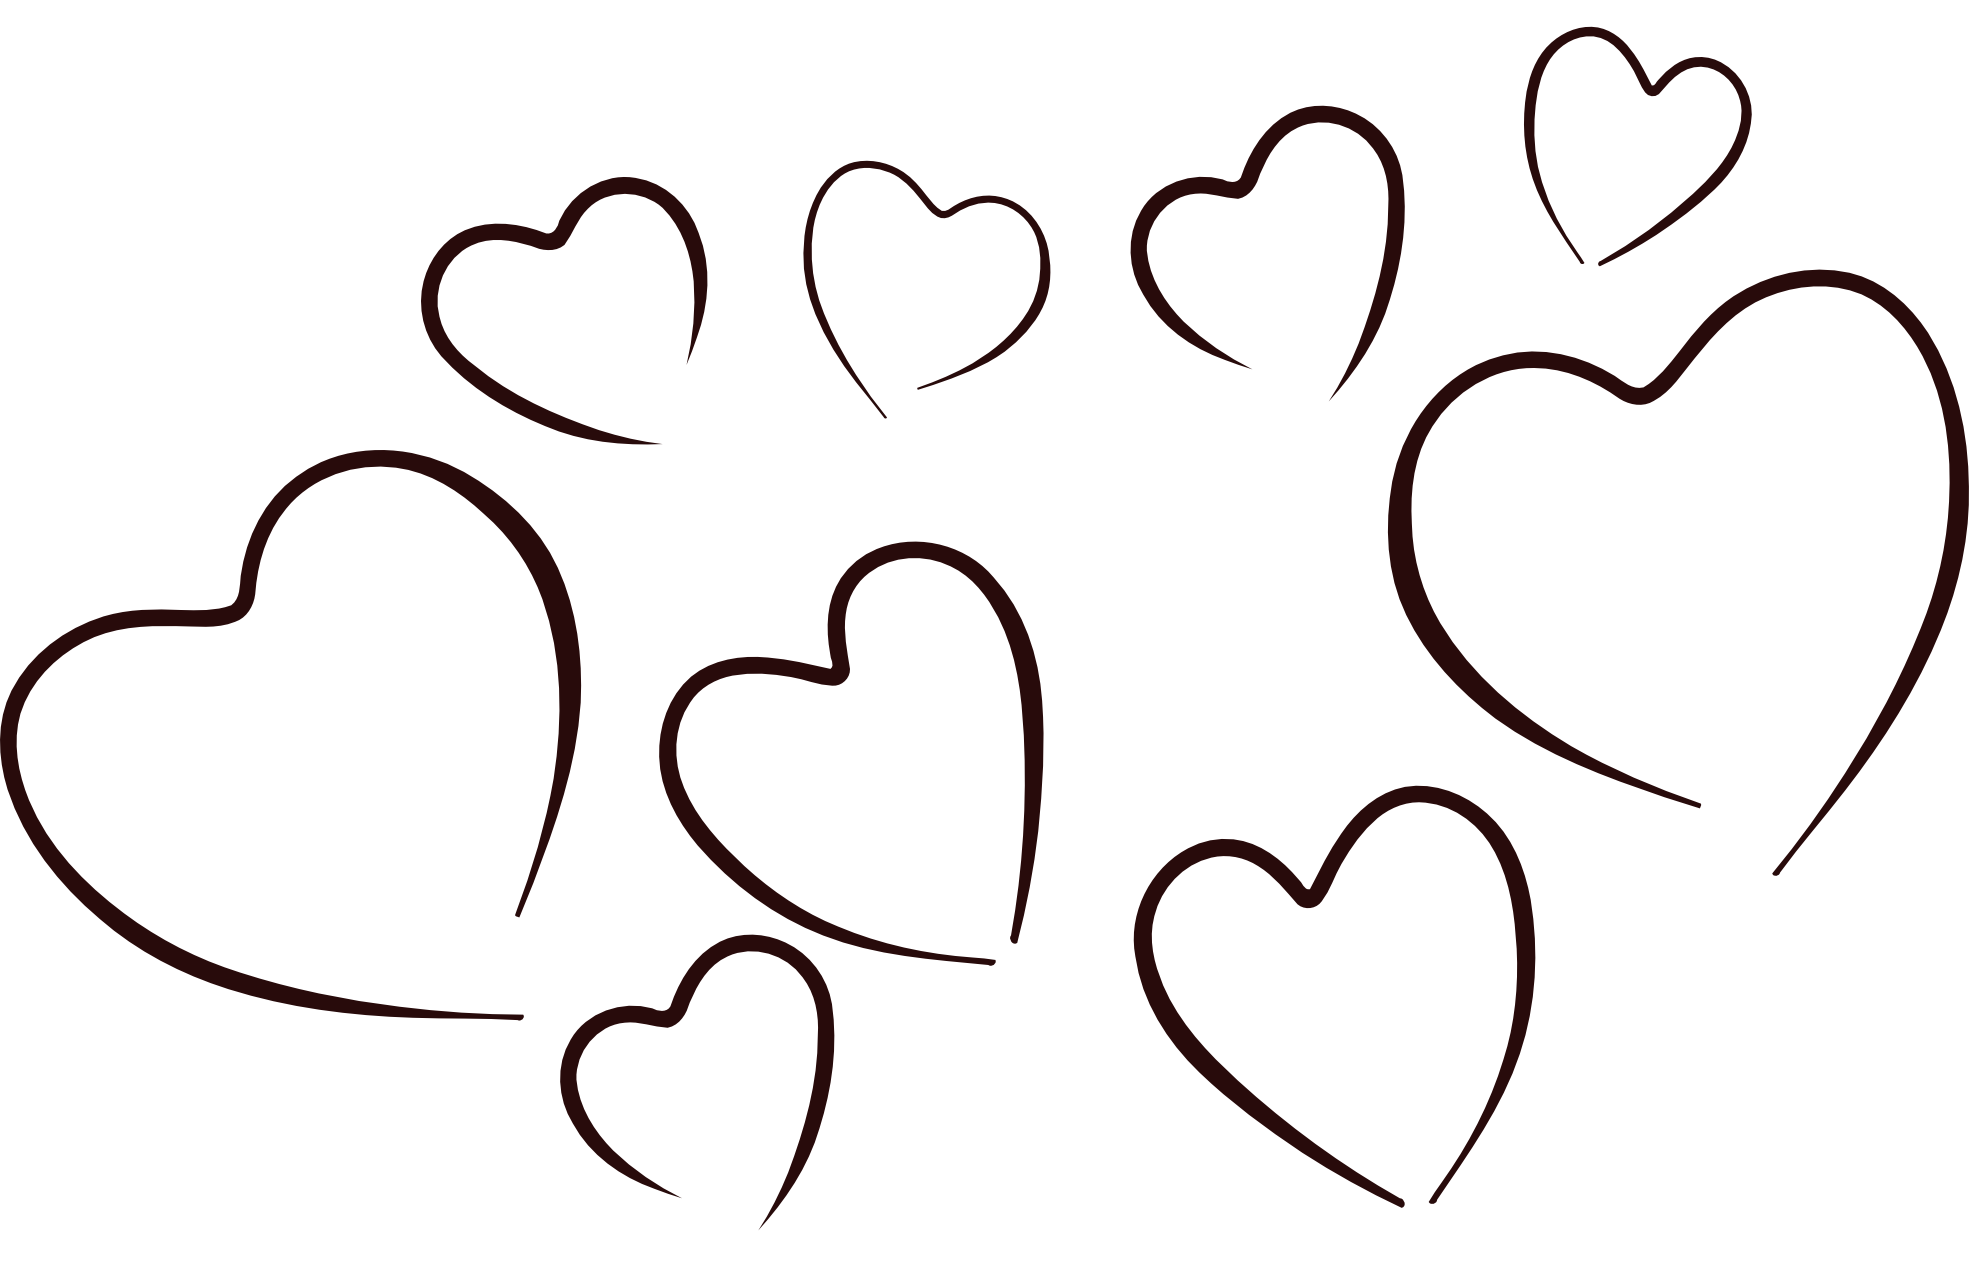 Heart Dogs furthermore Heart Star Tattoo Designs besides Romantic borders clip art moreover Post heart Traceable Printable 33693 furthermore 468444798711355412. on love hearts